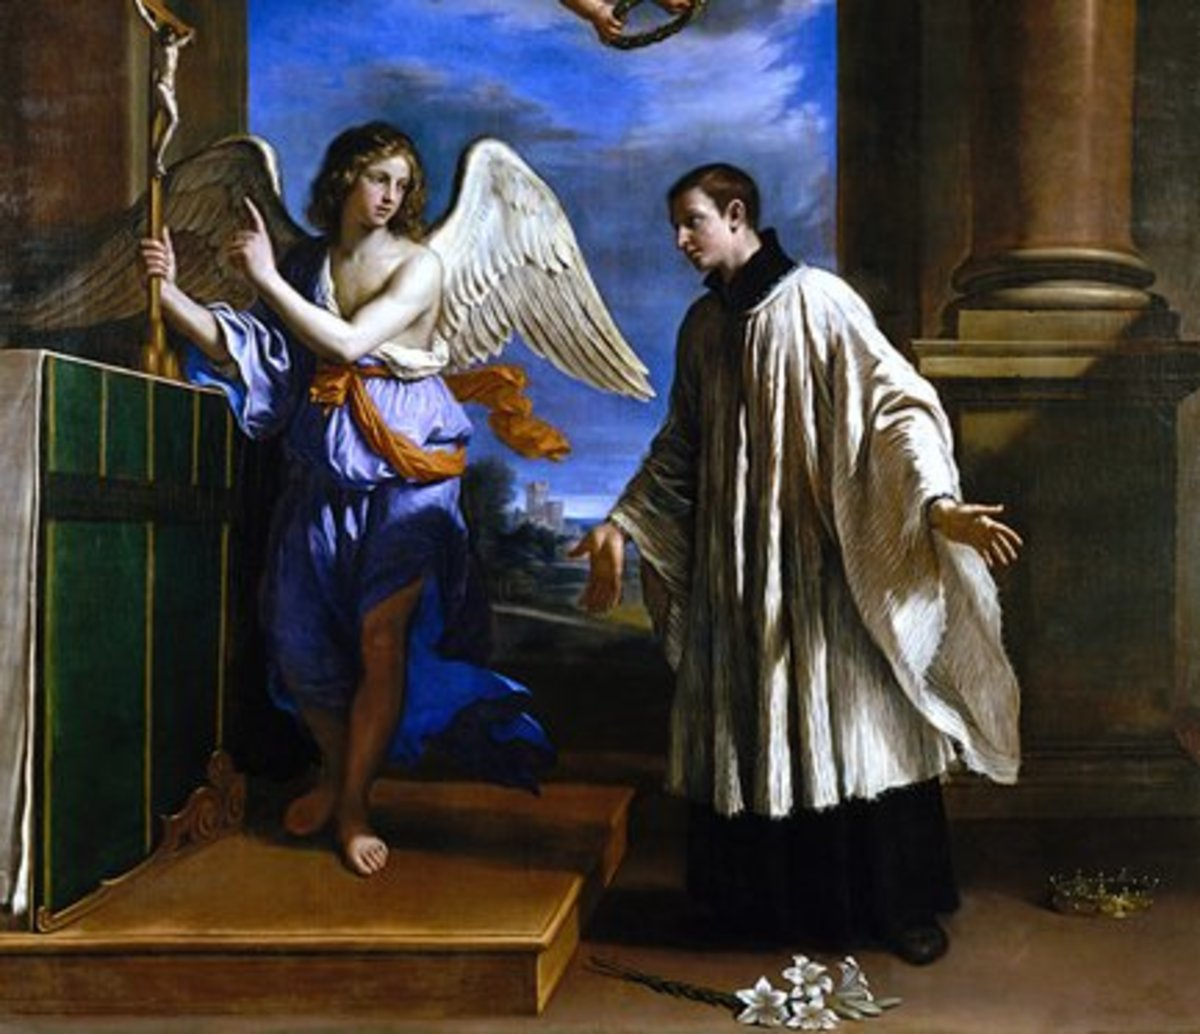 This allegorical painting by Guercino depicts St. Aloysius forsaking the crown to become a Jesuit.